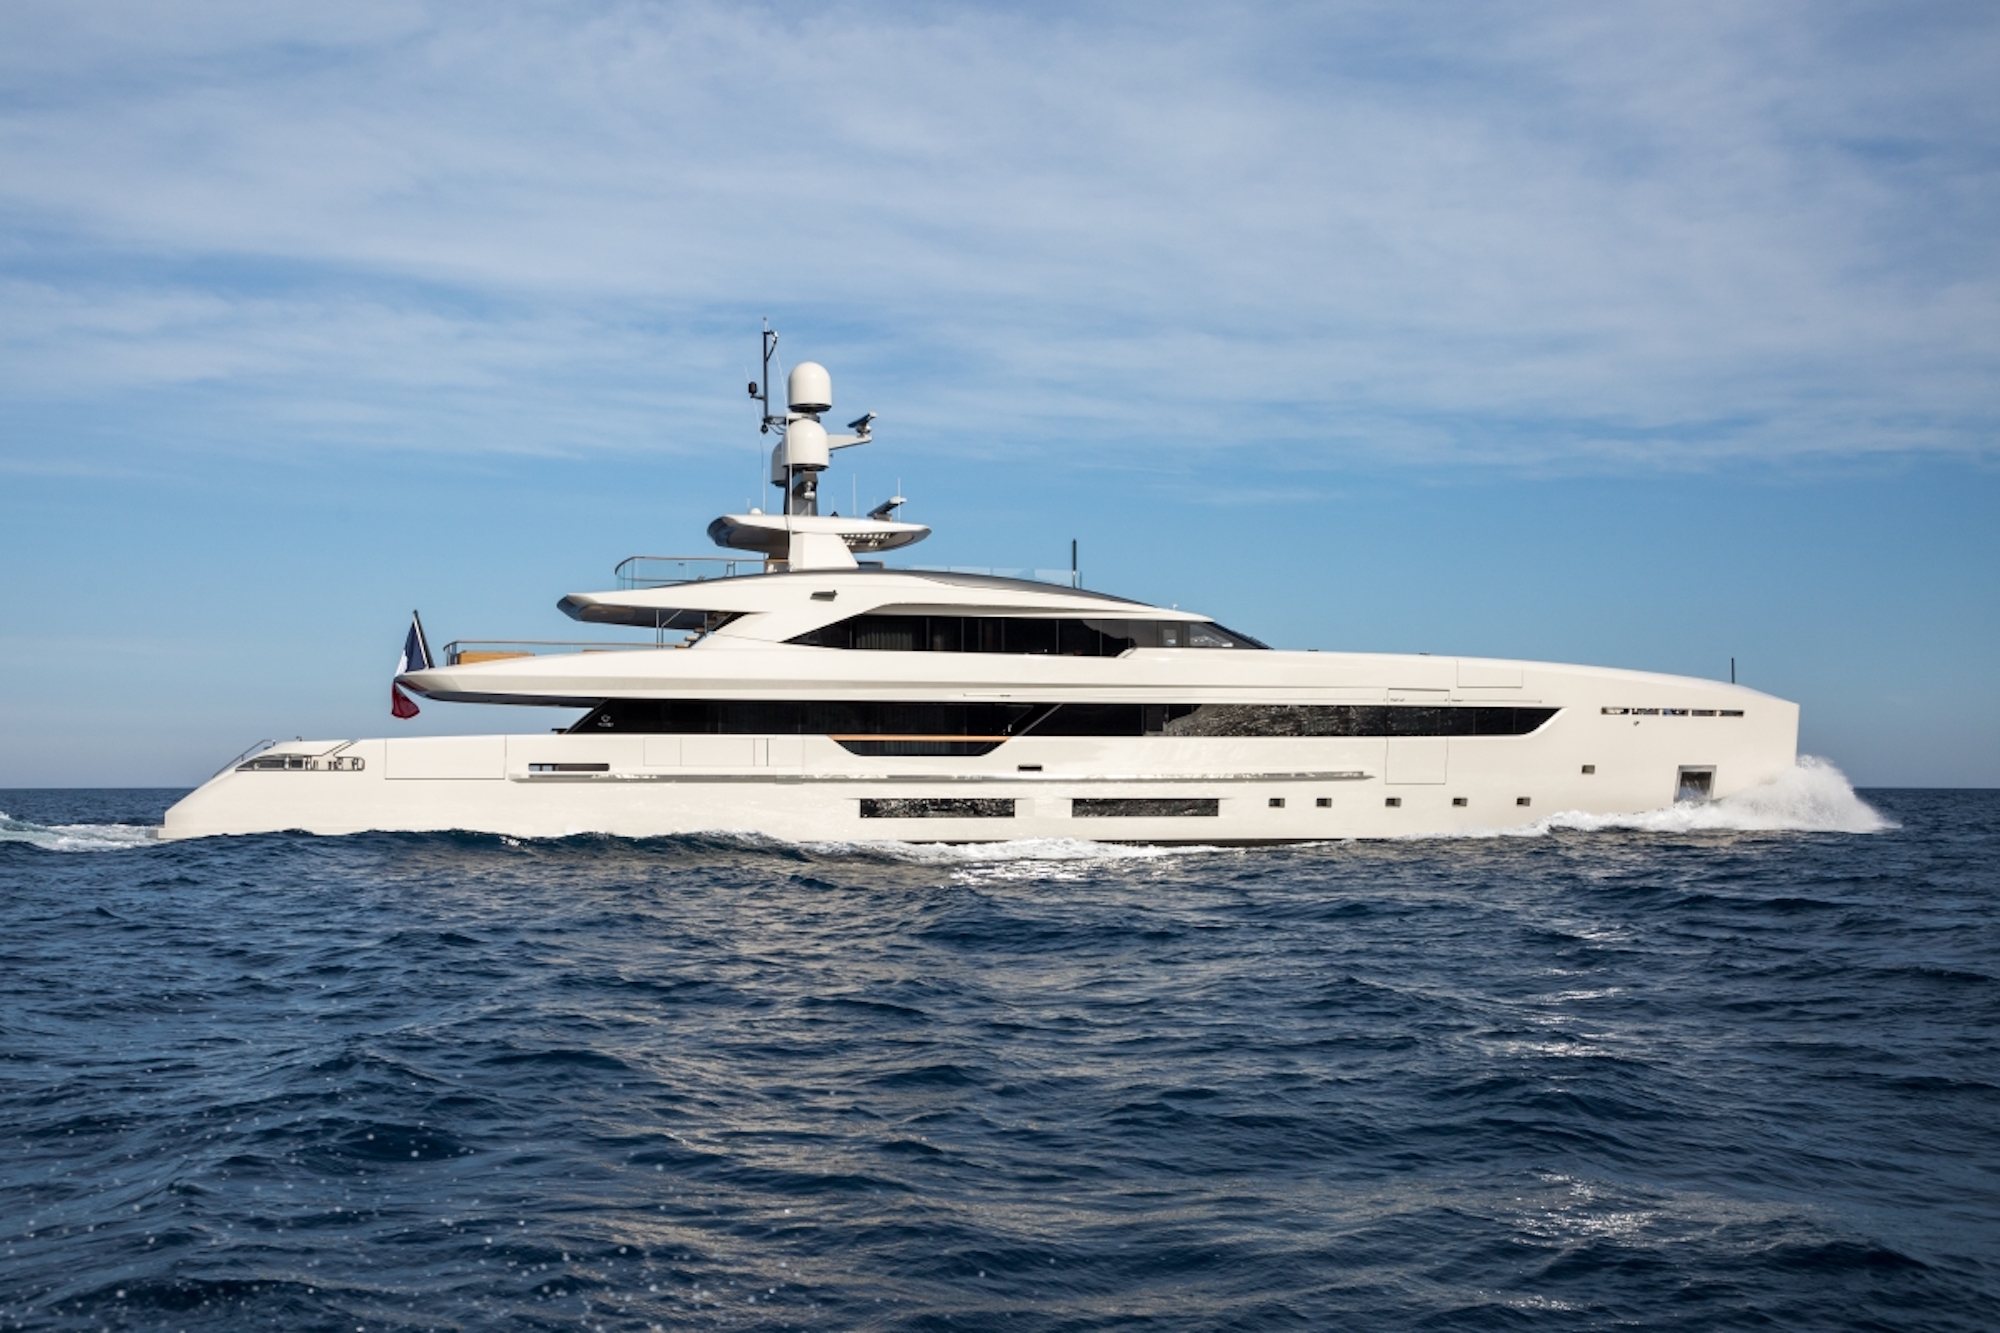 Luxury Charter Yacht VERTIGE From Tankoa Yachts - Currently On Display At The Monaco Yacht Show